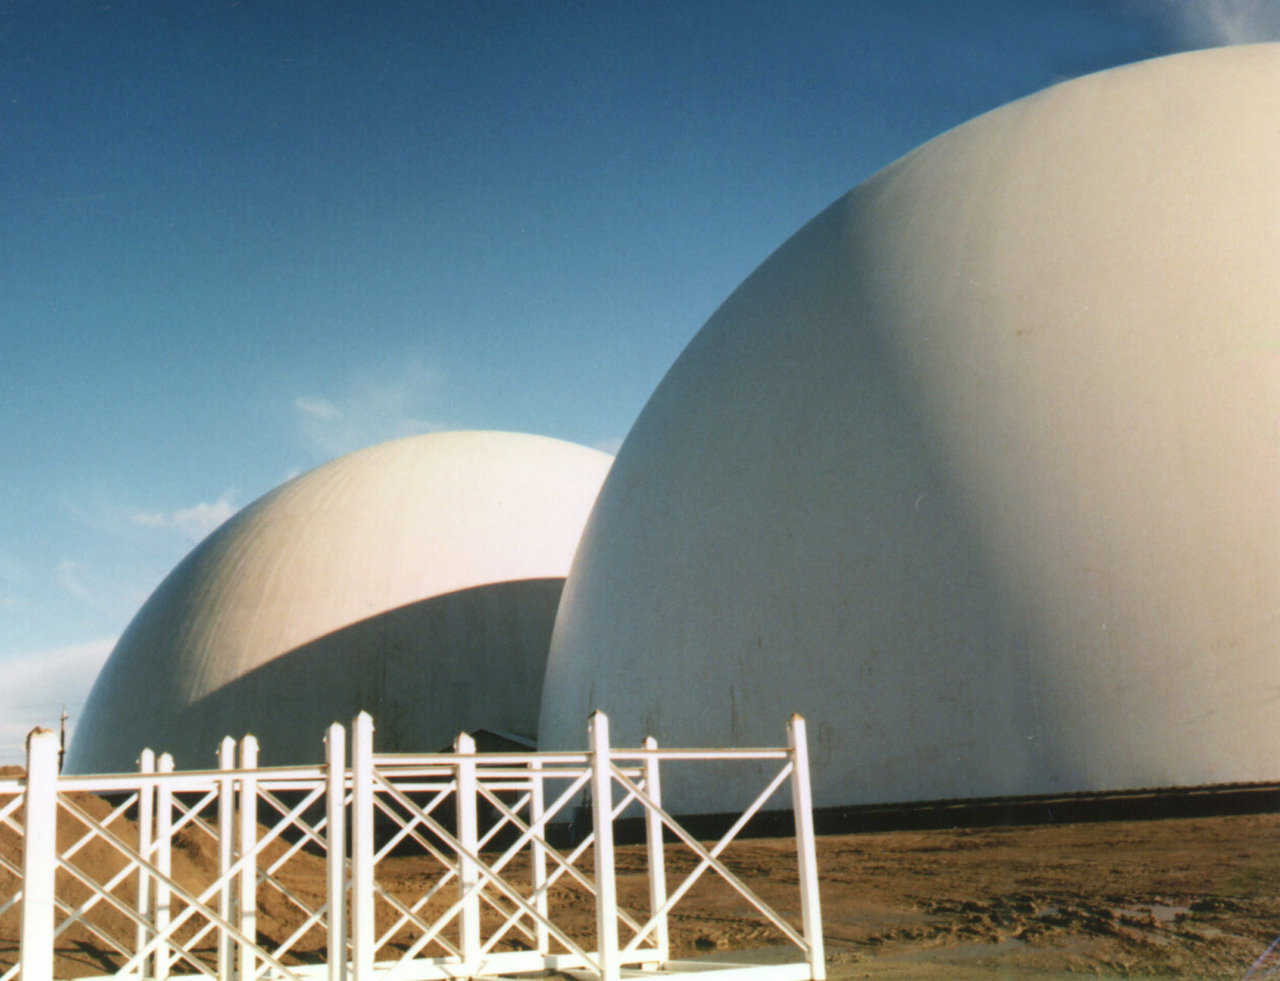 Monolithic Domes For Cold Storage & Monolithic Domes For Cold Storage | Monolithic Dome Institute